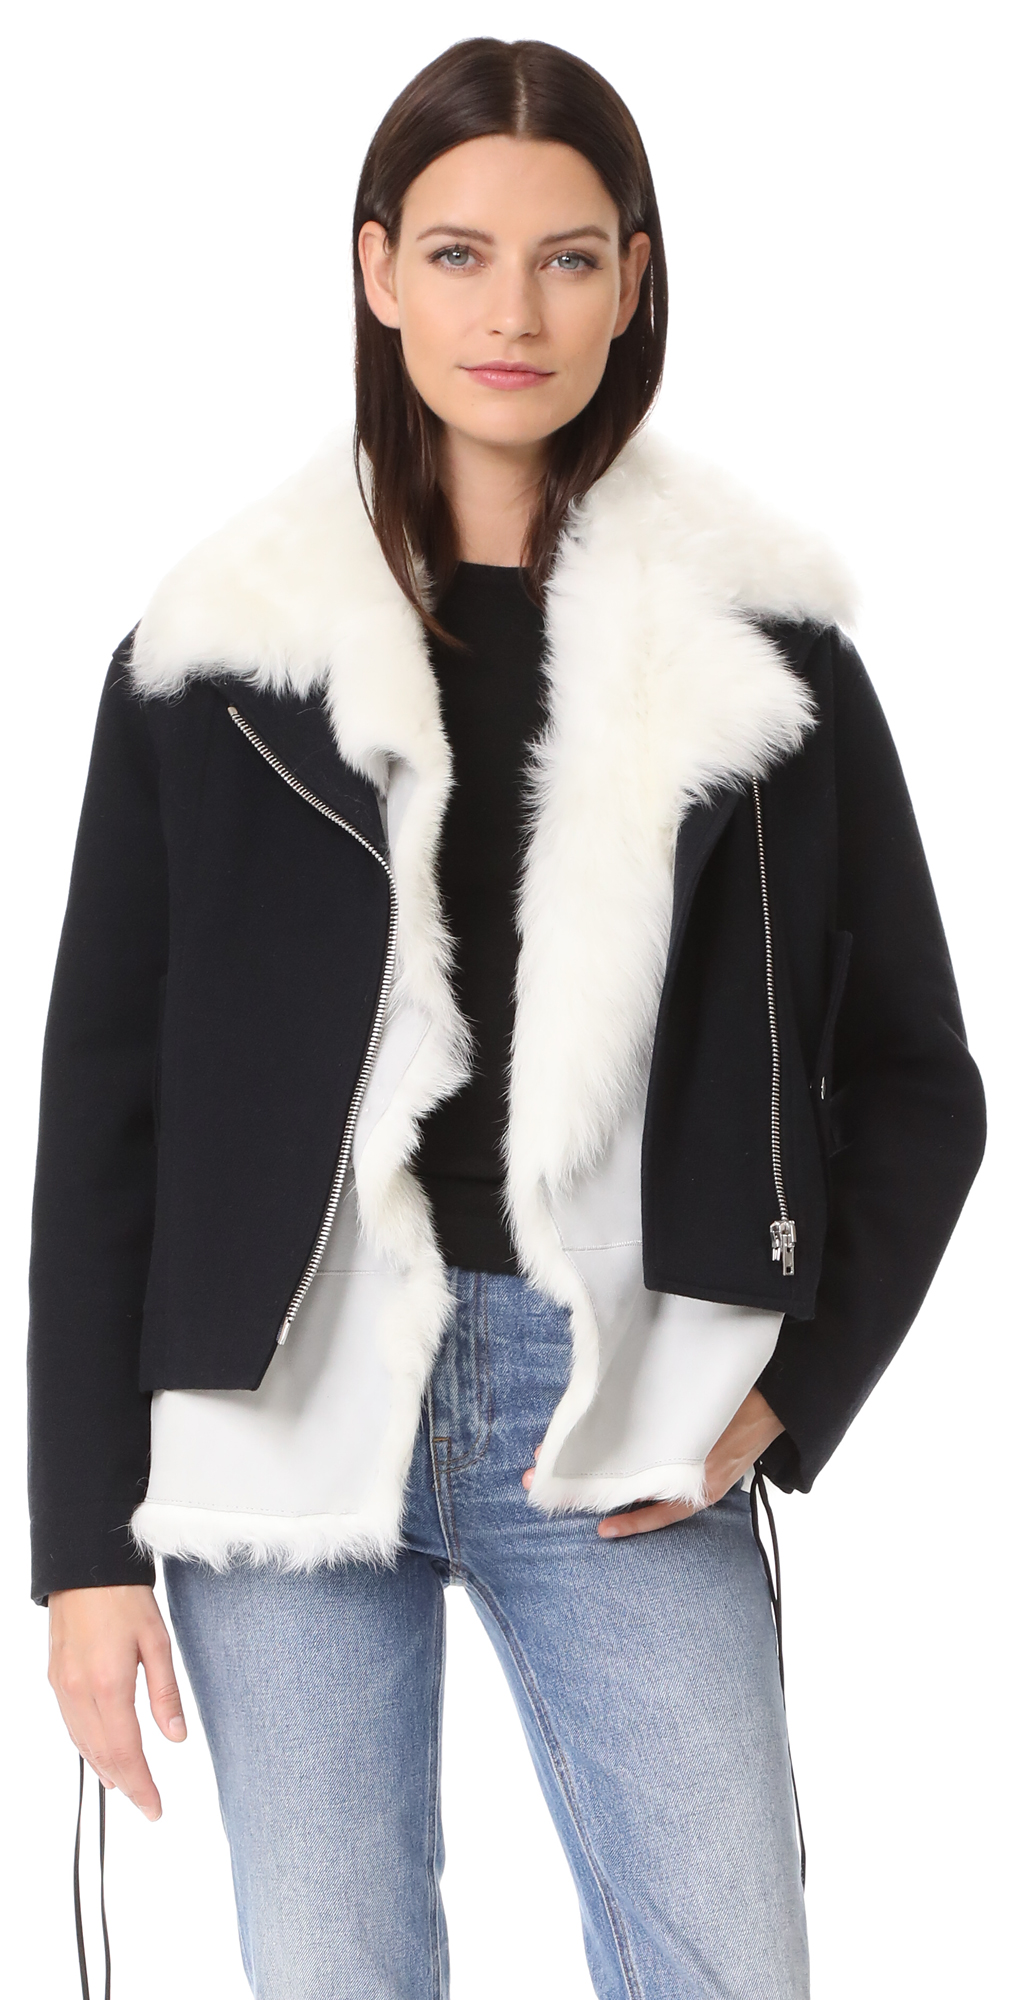 Bells Jacket with Removable Fur Vest IRO